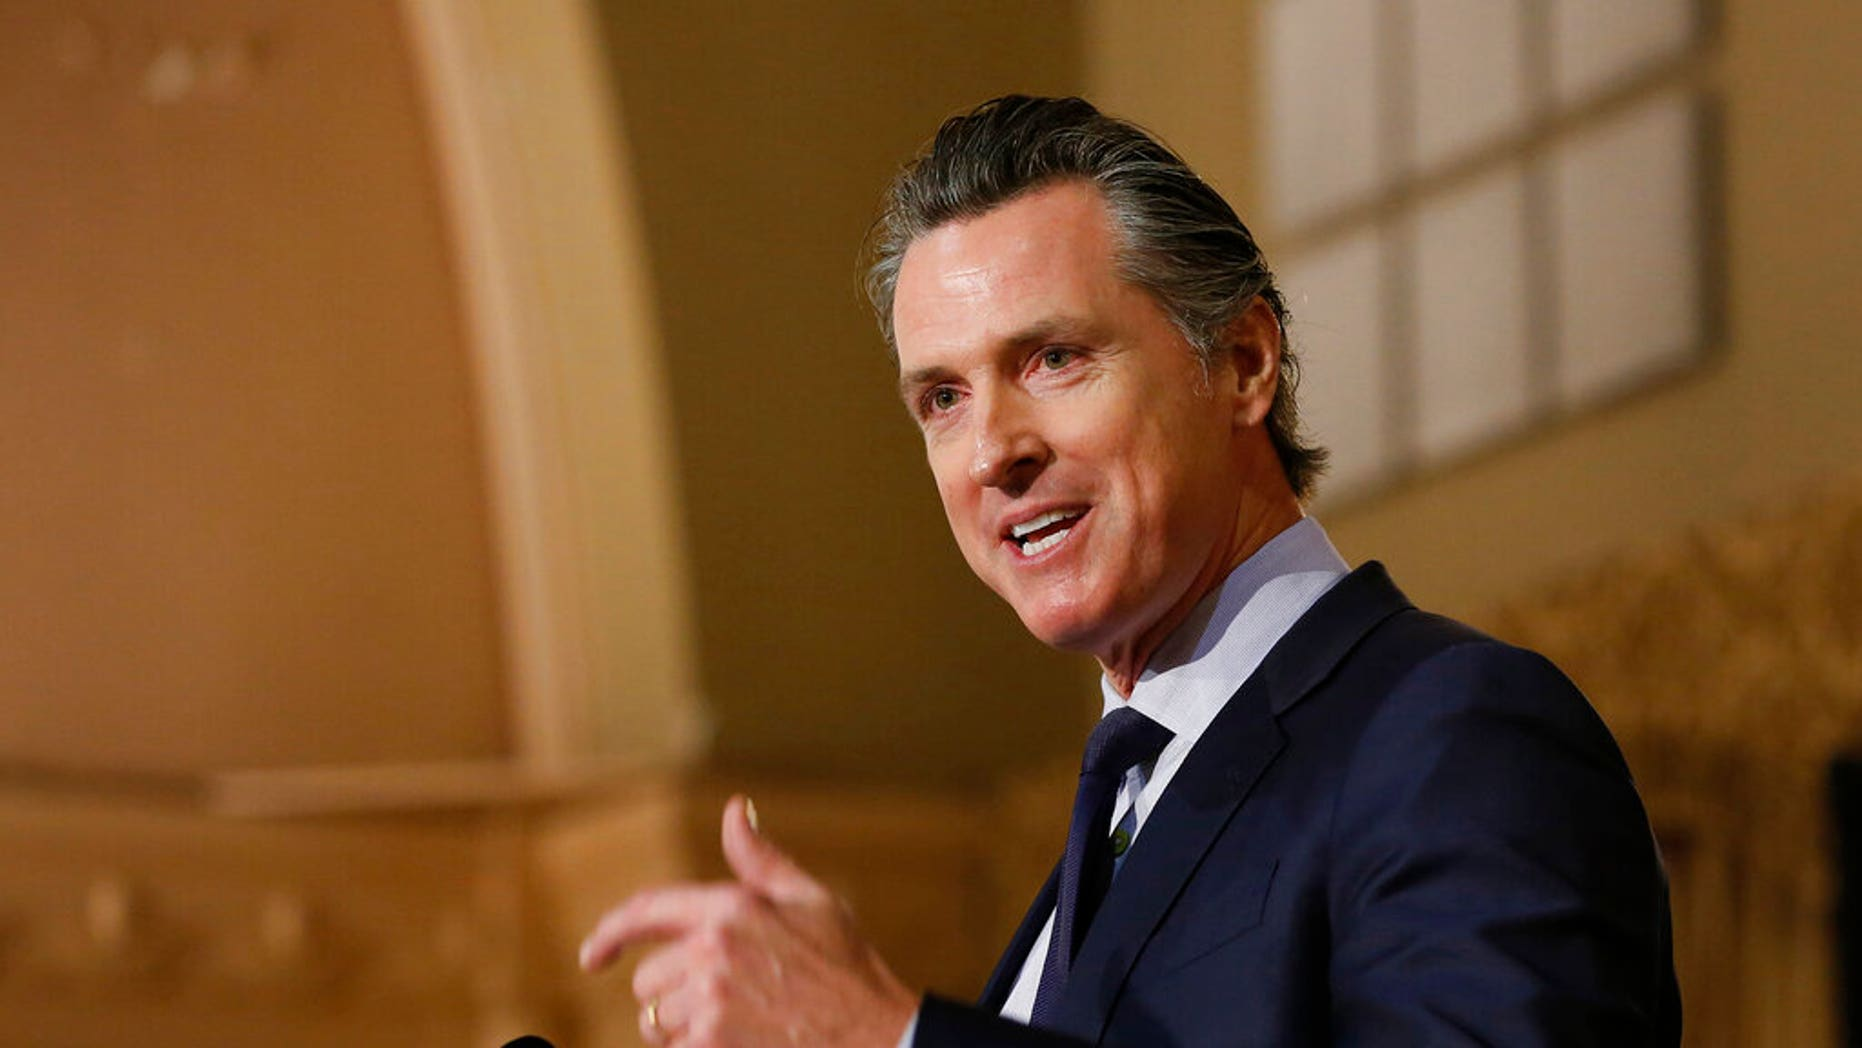 Gov. Newsom to pull National Guard from border